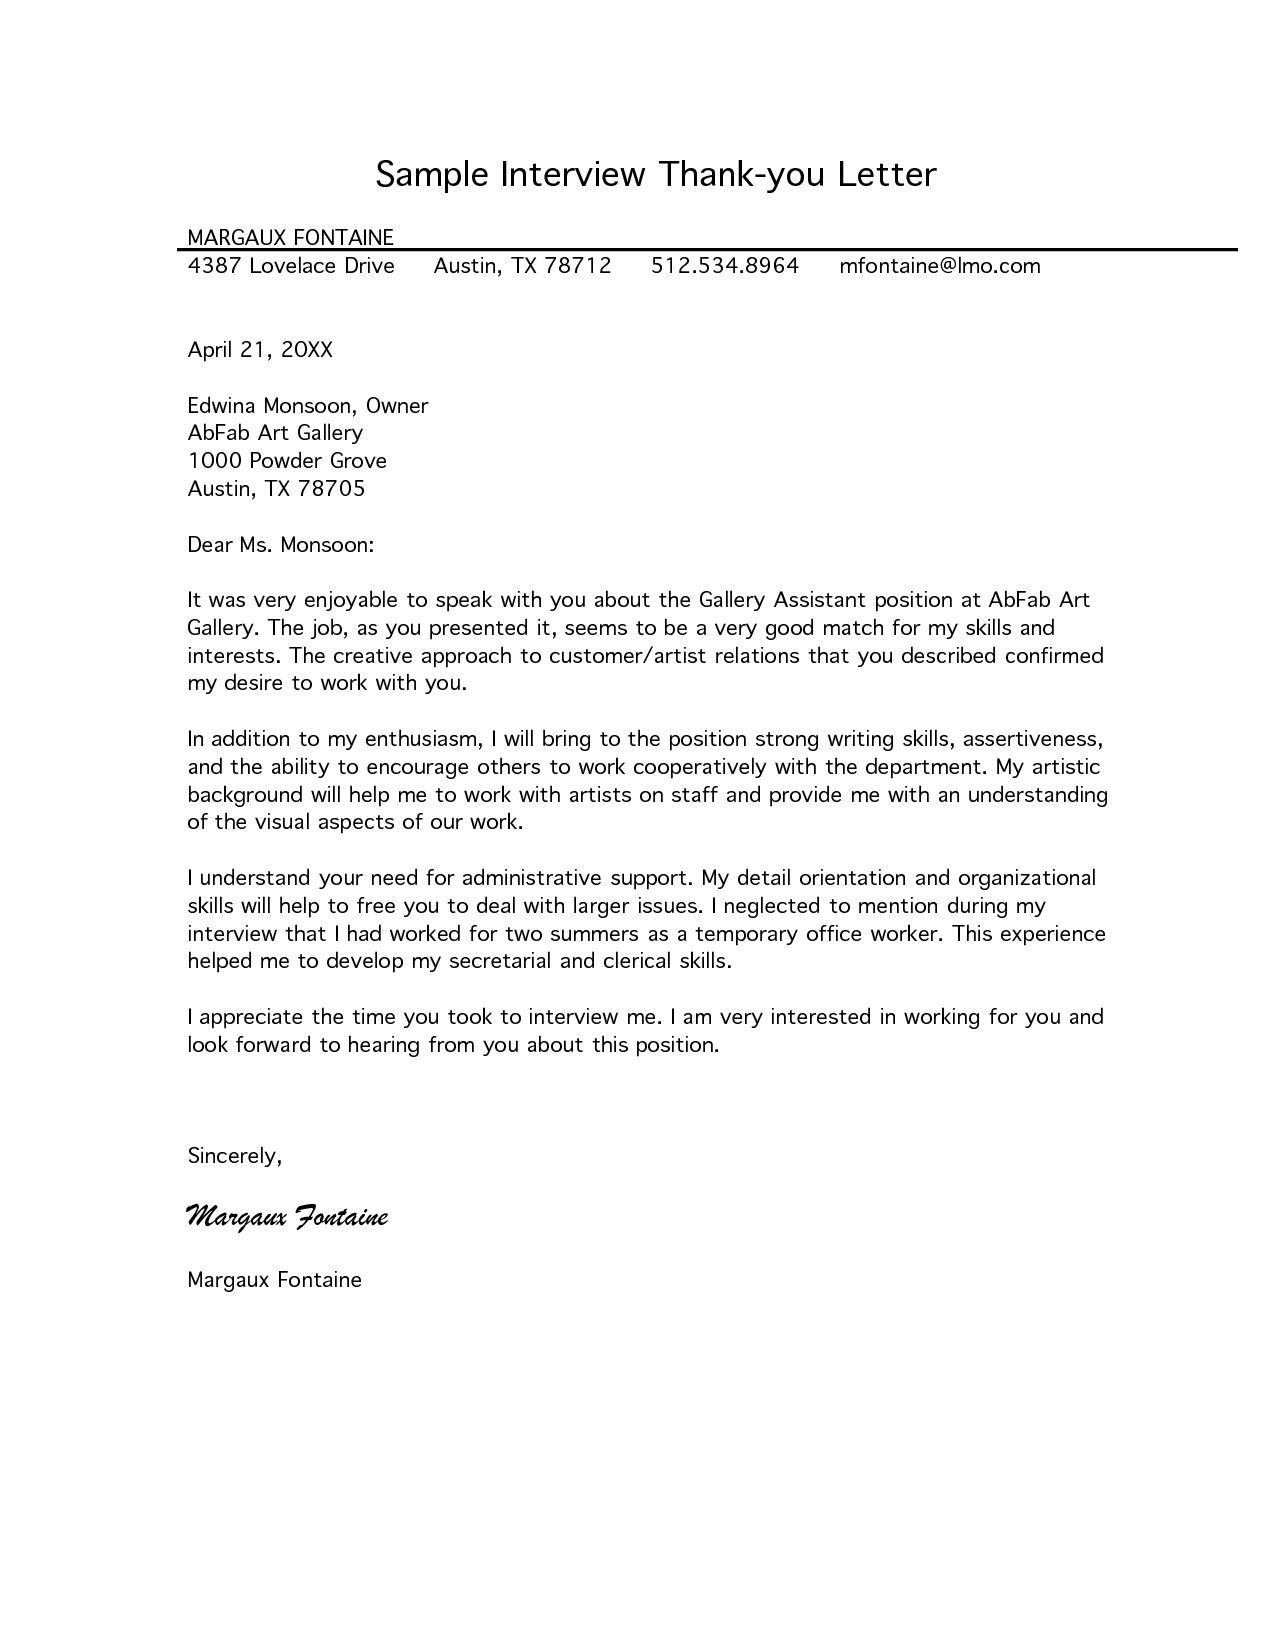 002 Beautiful Follow Up Letter After Interview Sample  Handwritten Note Email For Job TemplateFull